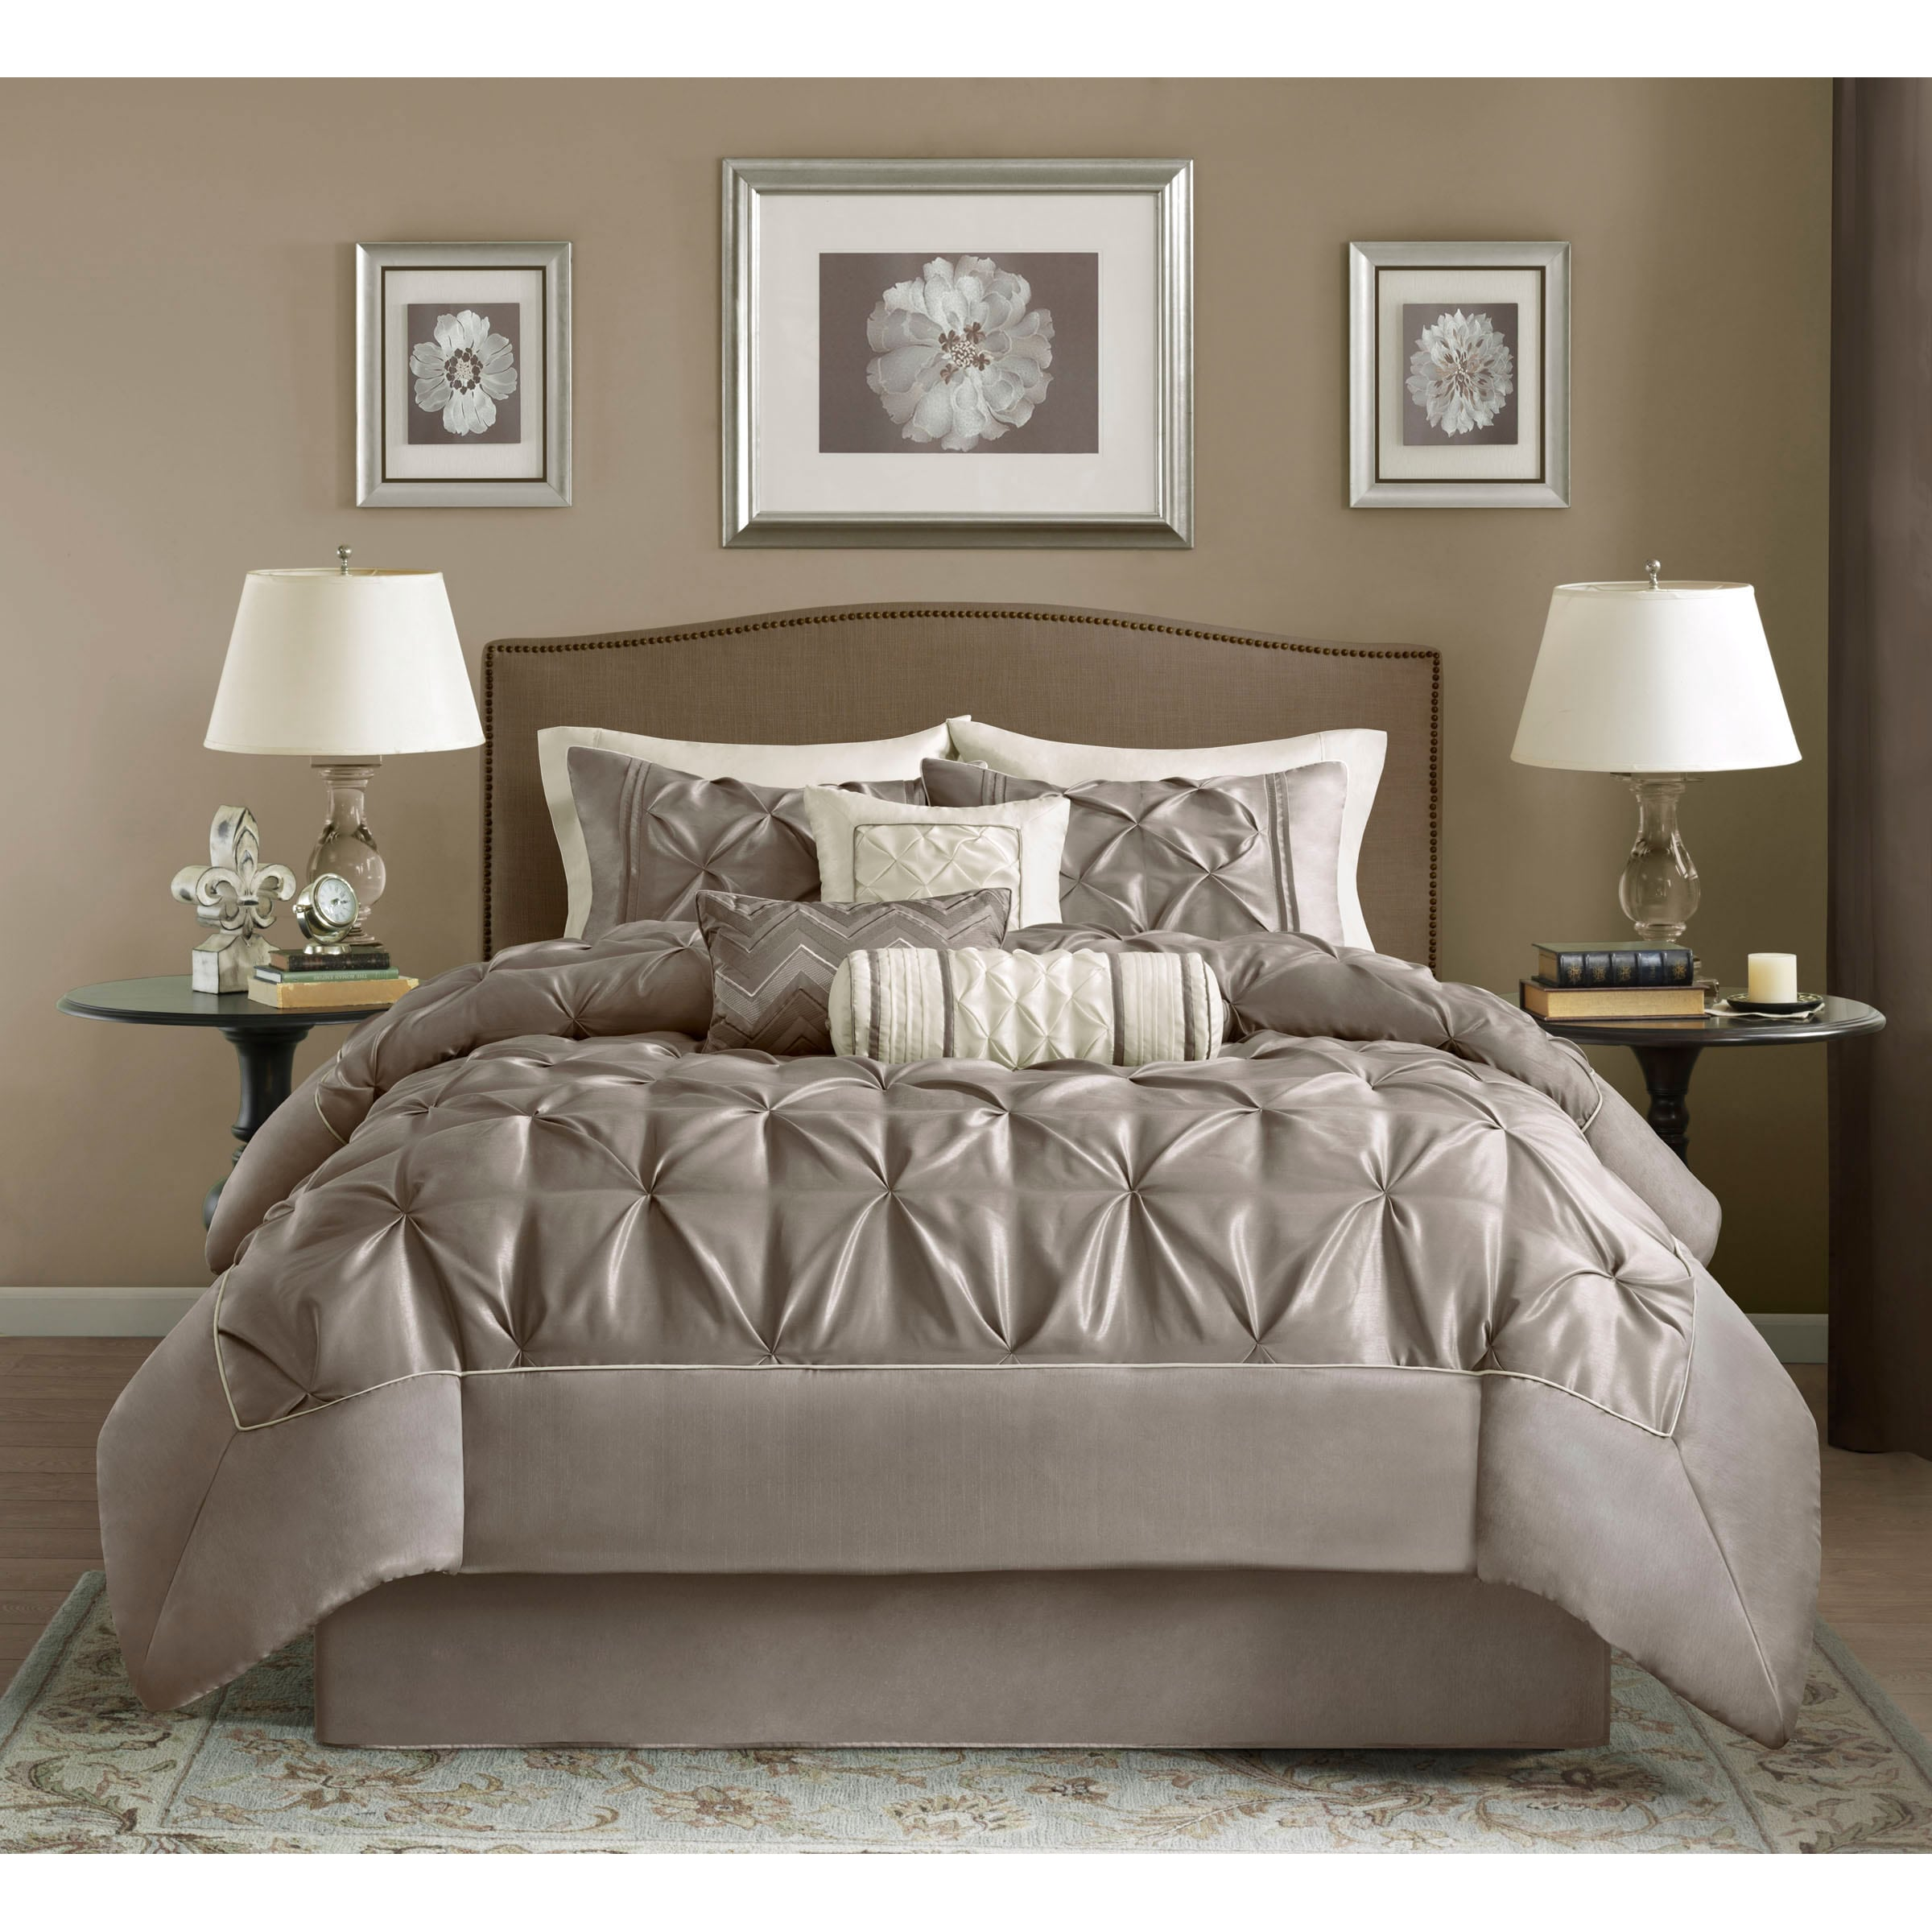 pin bnf ruffle serent beddings matte satin bedspread set pinterest comforter